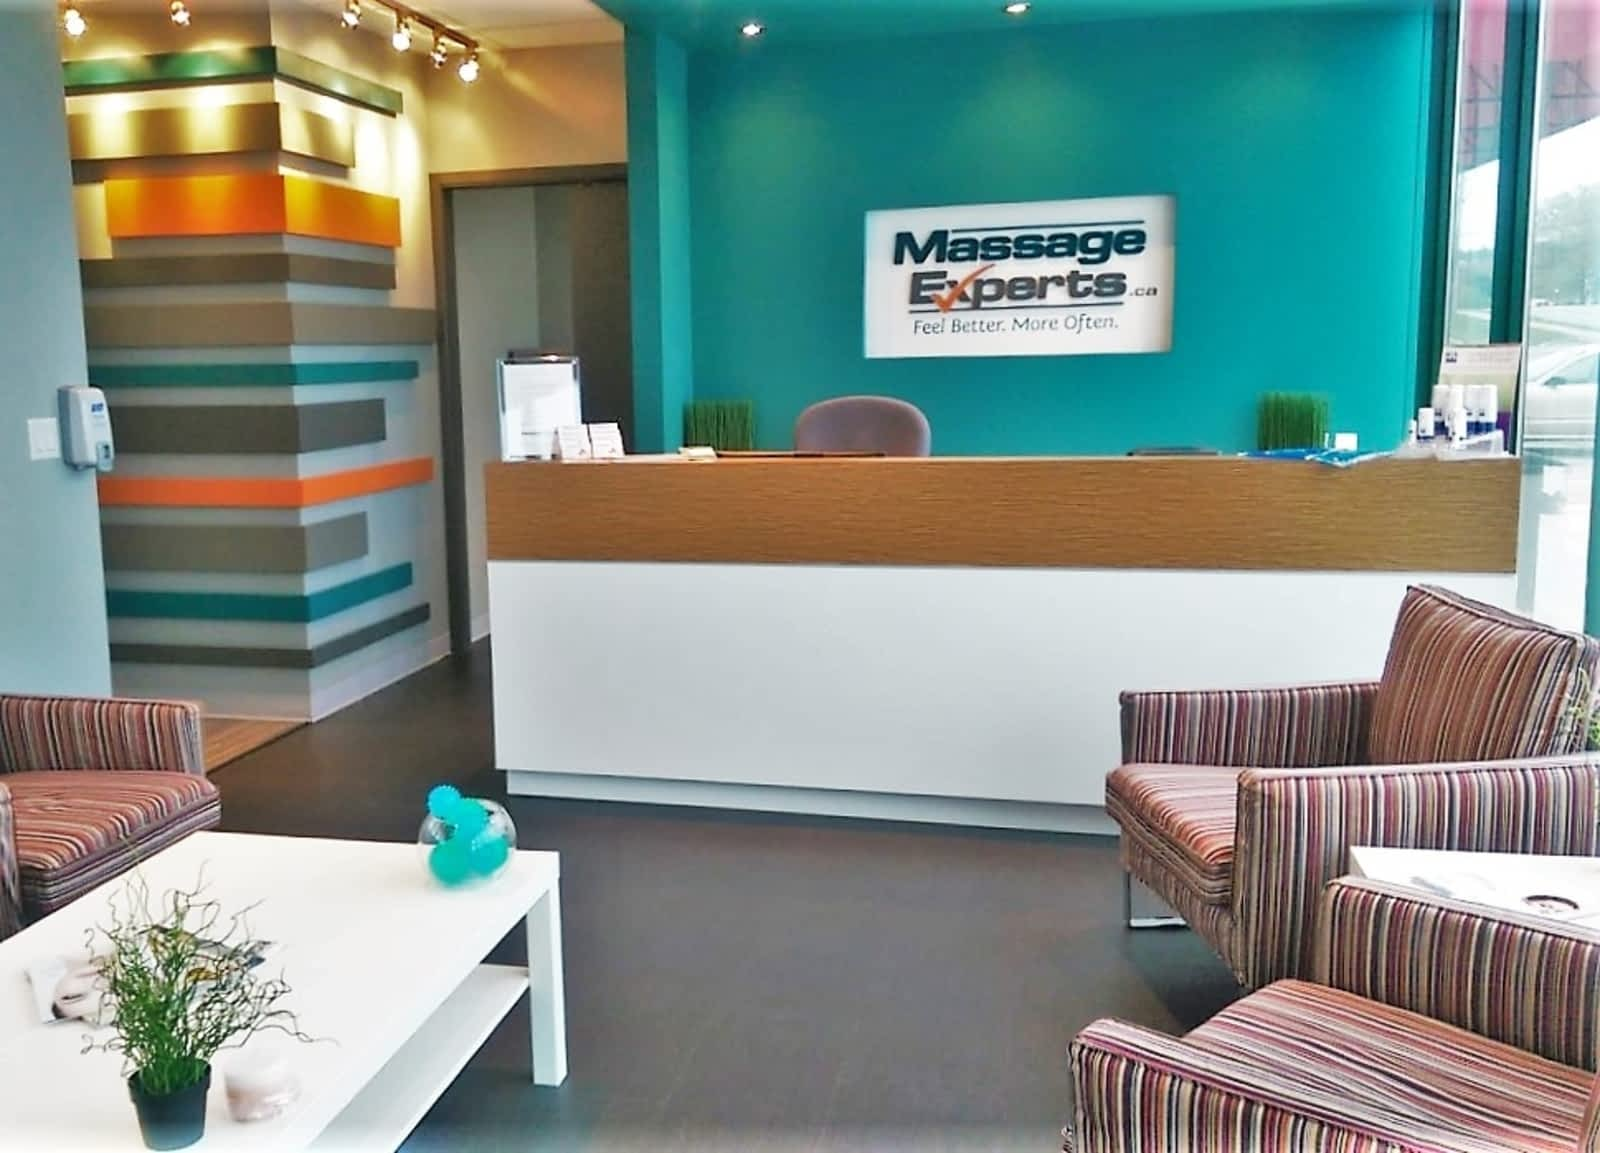 Massage Experts Dartmouth - Opening Hours - 114 Woodlawn